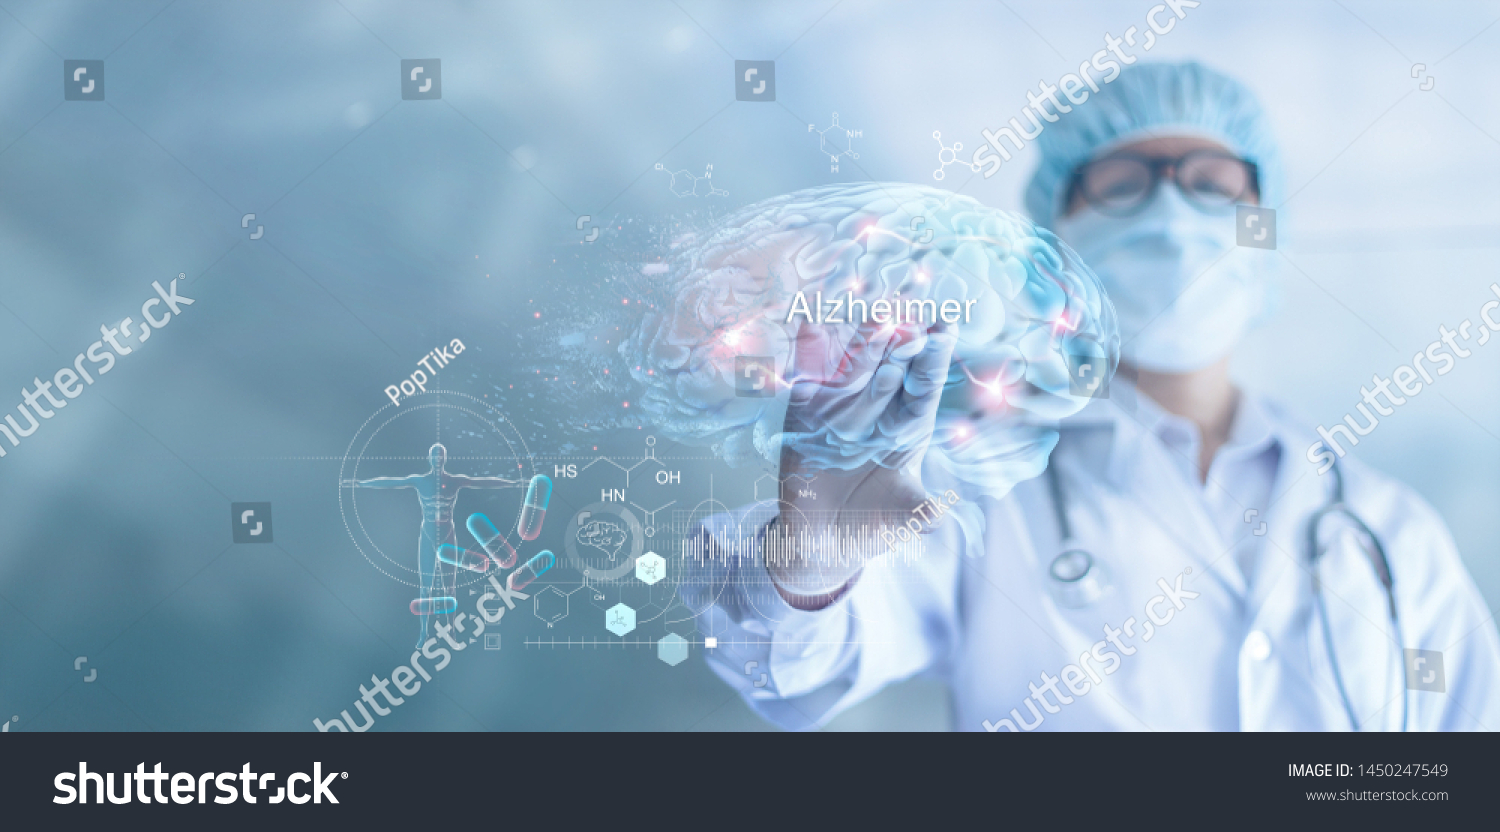 Abstract, Doctor checking and analysis alzheimer's disease and dementia of brain, testing result on virtual interface, innovative technology in science and medicine concept #1450247549